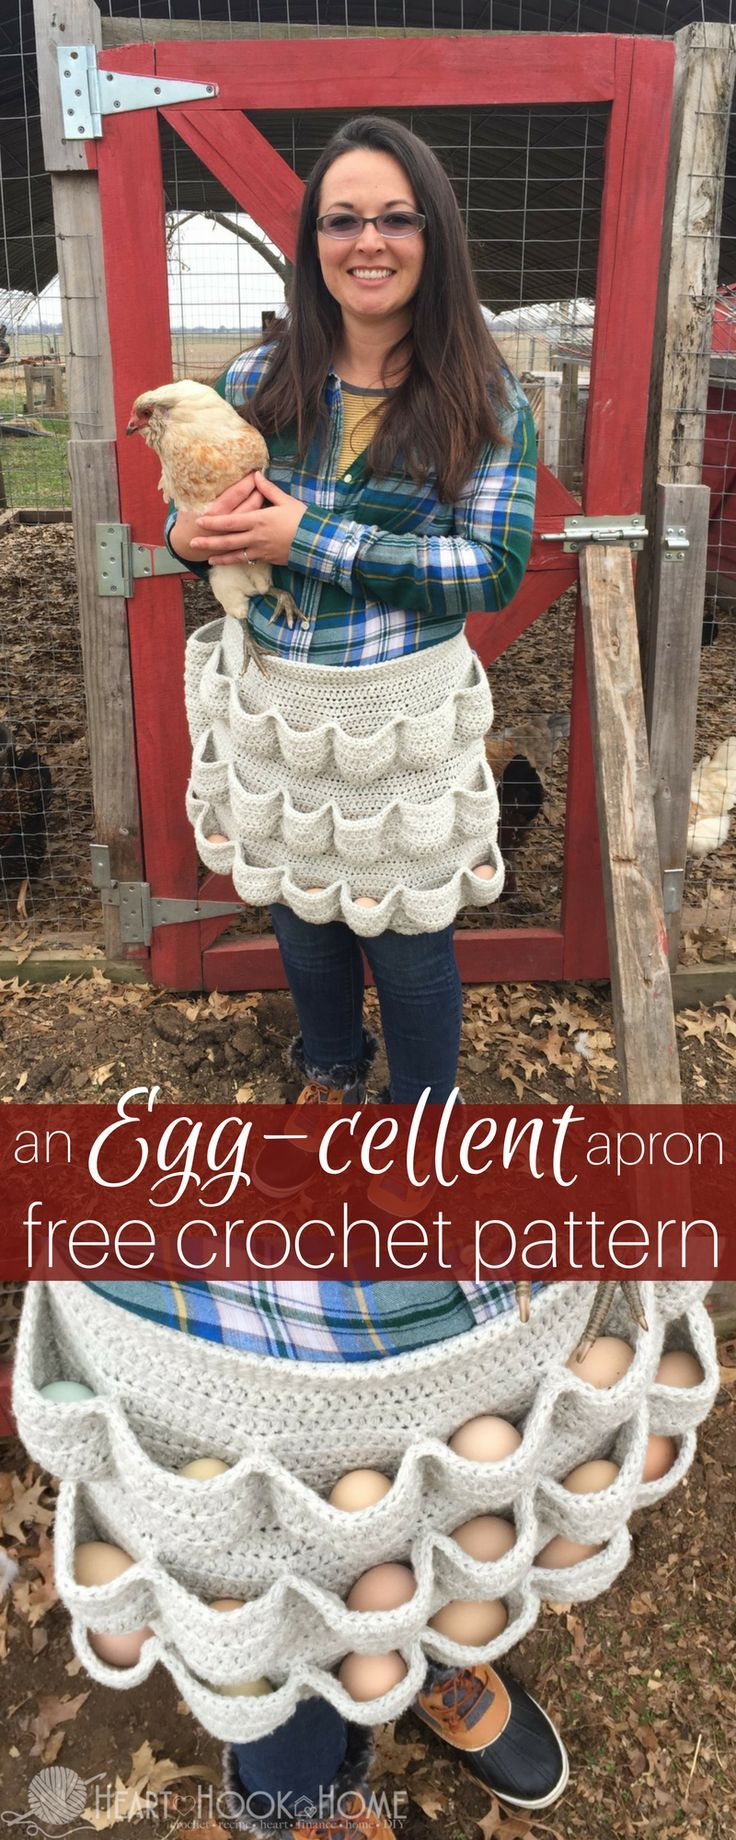 An Egg-celled Apron: Egg Gathering Apron FREE Crochet Pattern An Egg-celled Apron: Egg Gathering Apron FREE Crochet Pattern